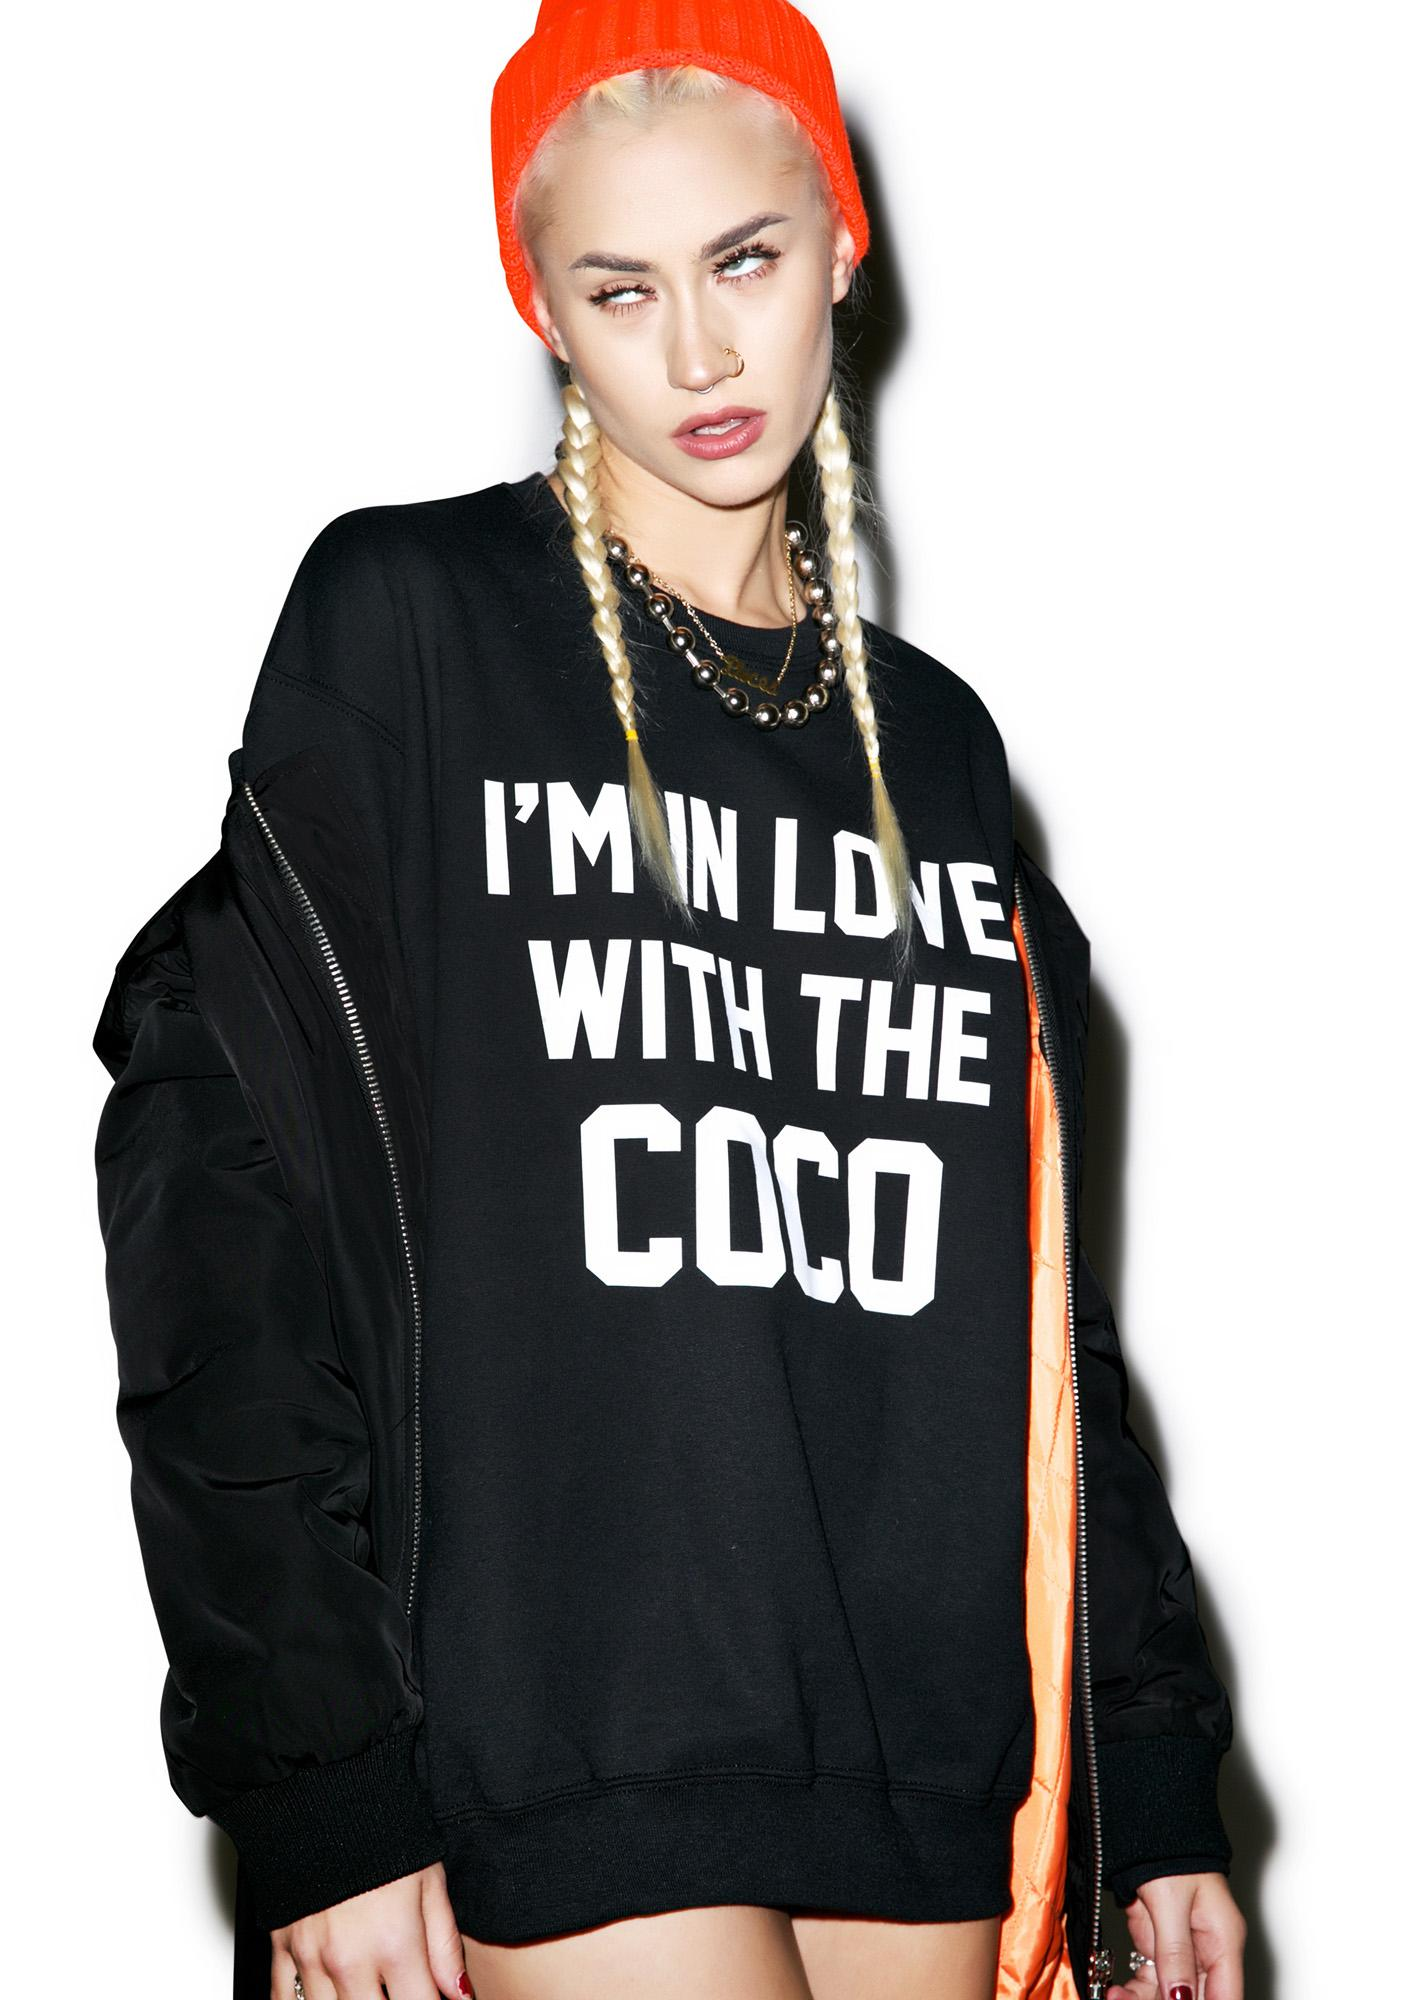 Private Party In Love With The Coco Sweatshirt